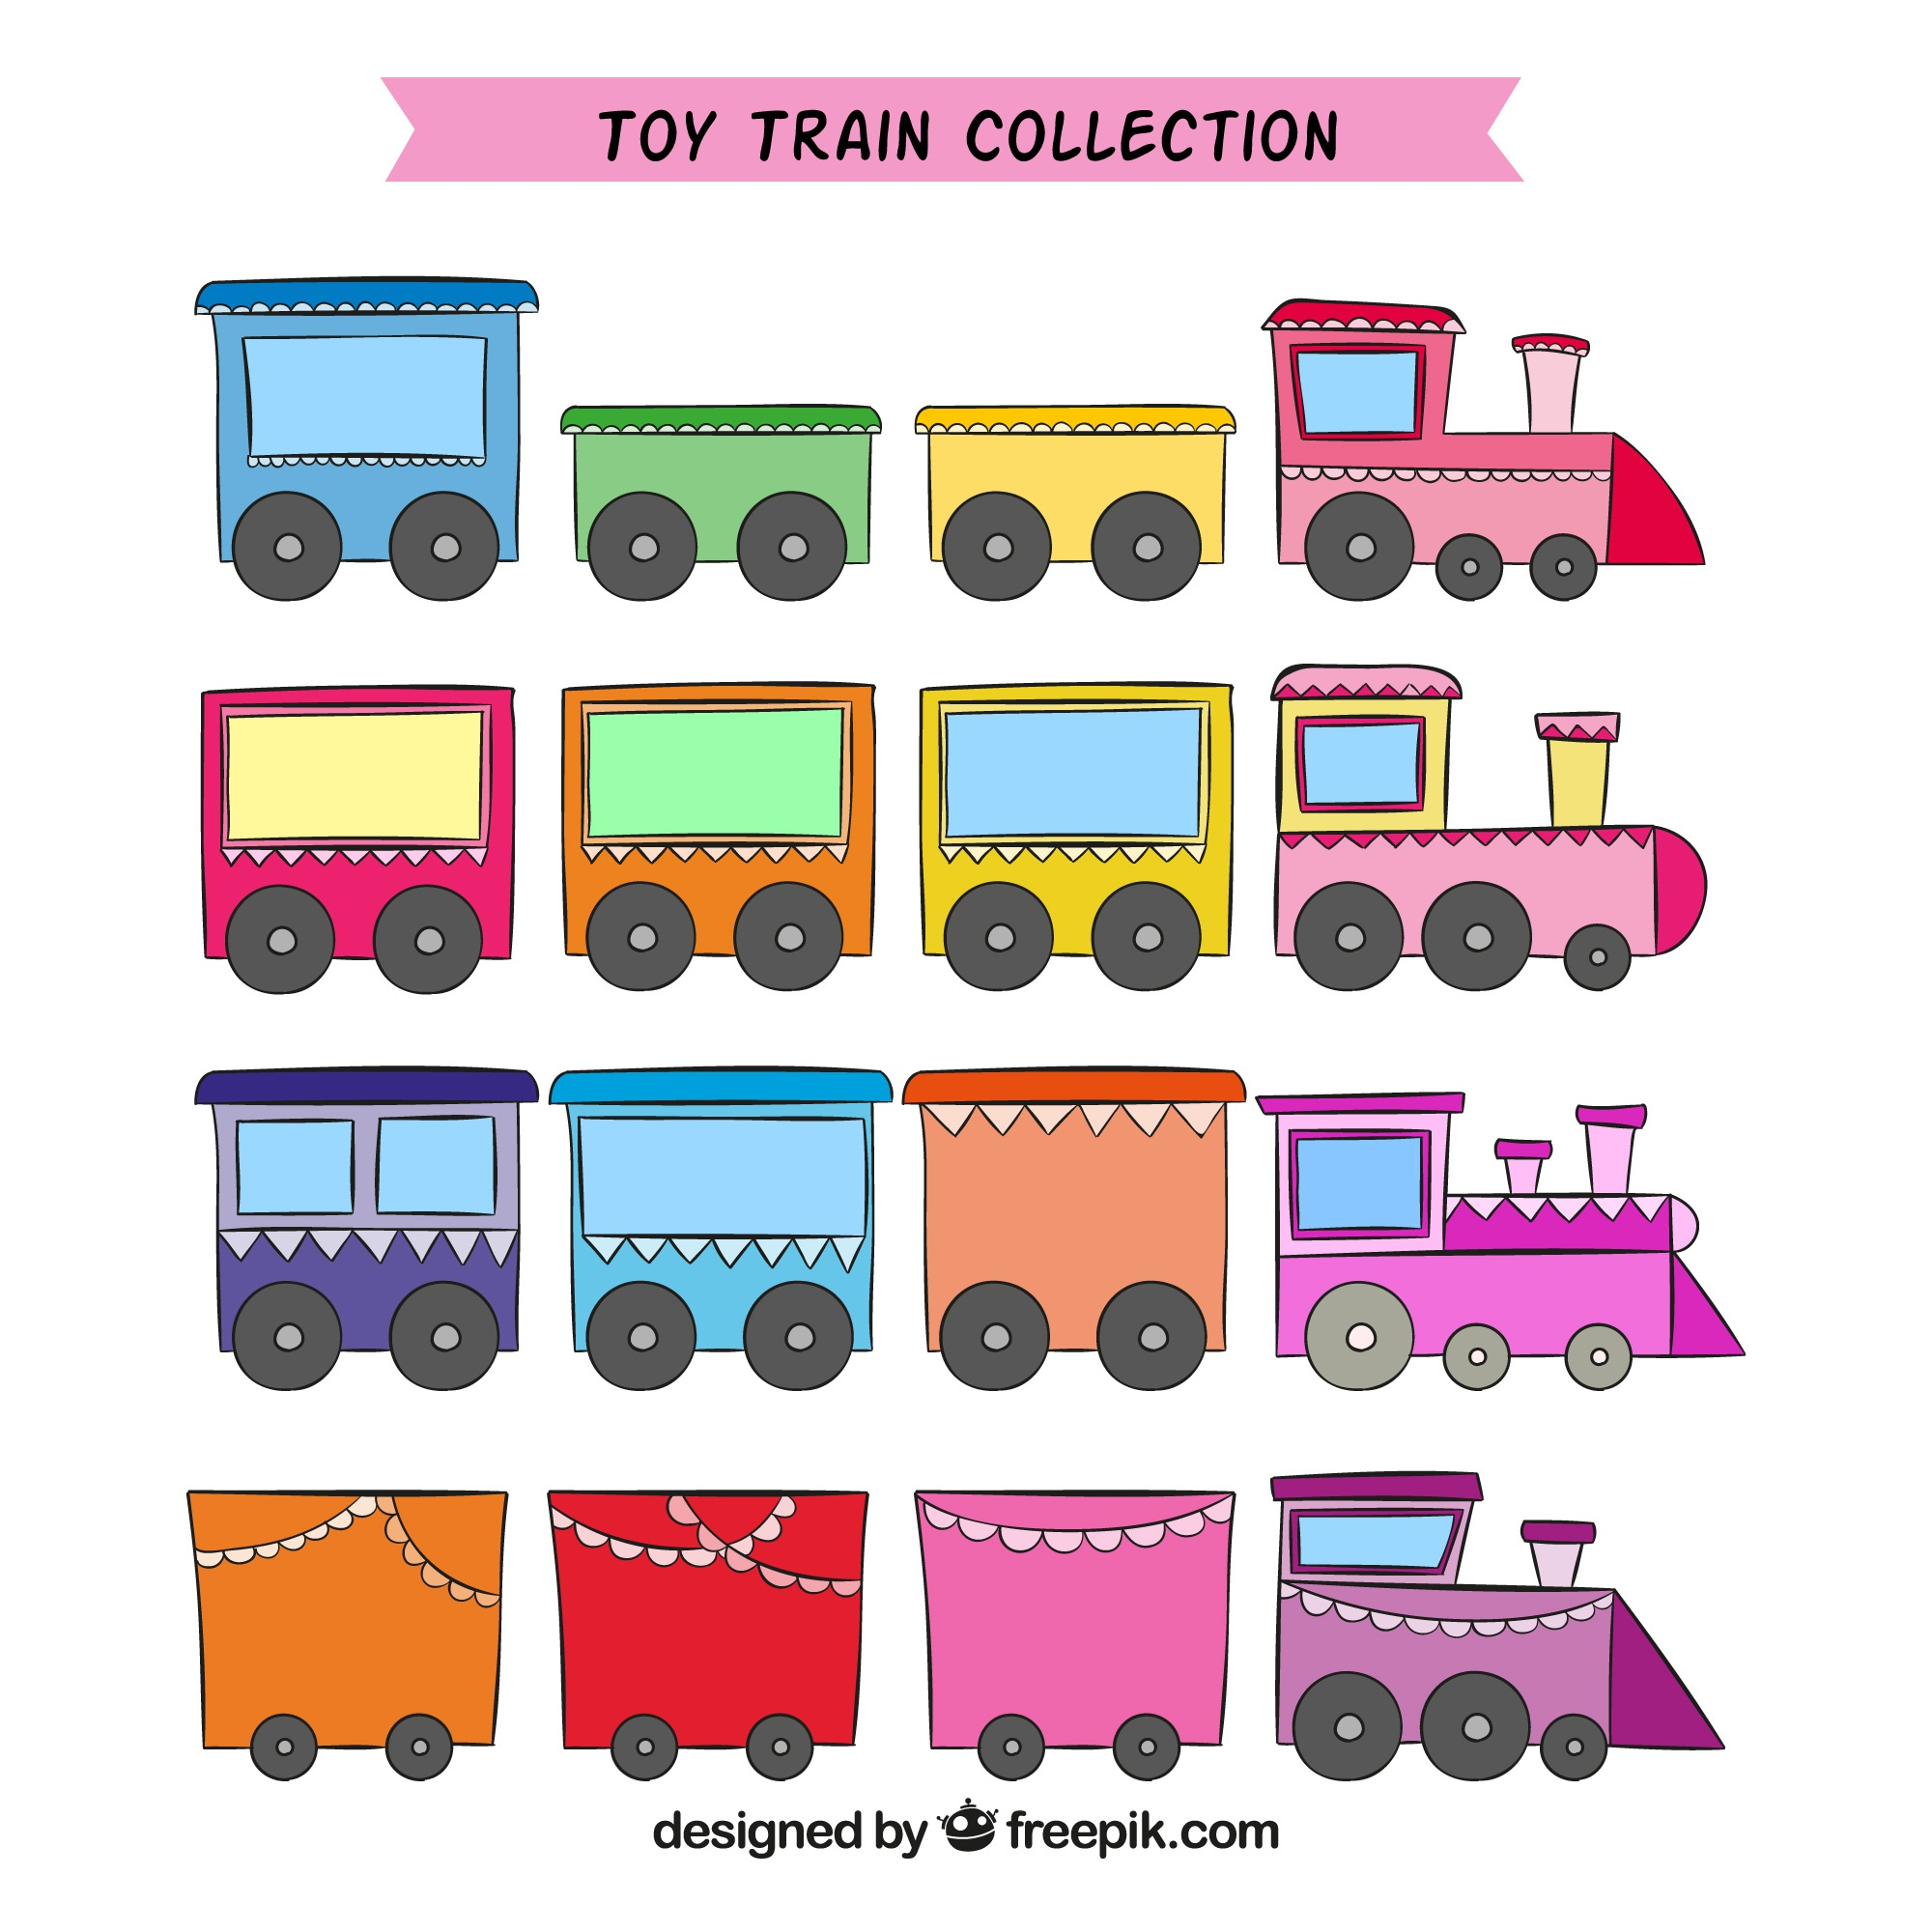 Colored toy trains in hand-drawn style